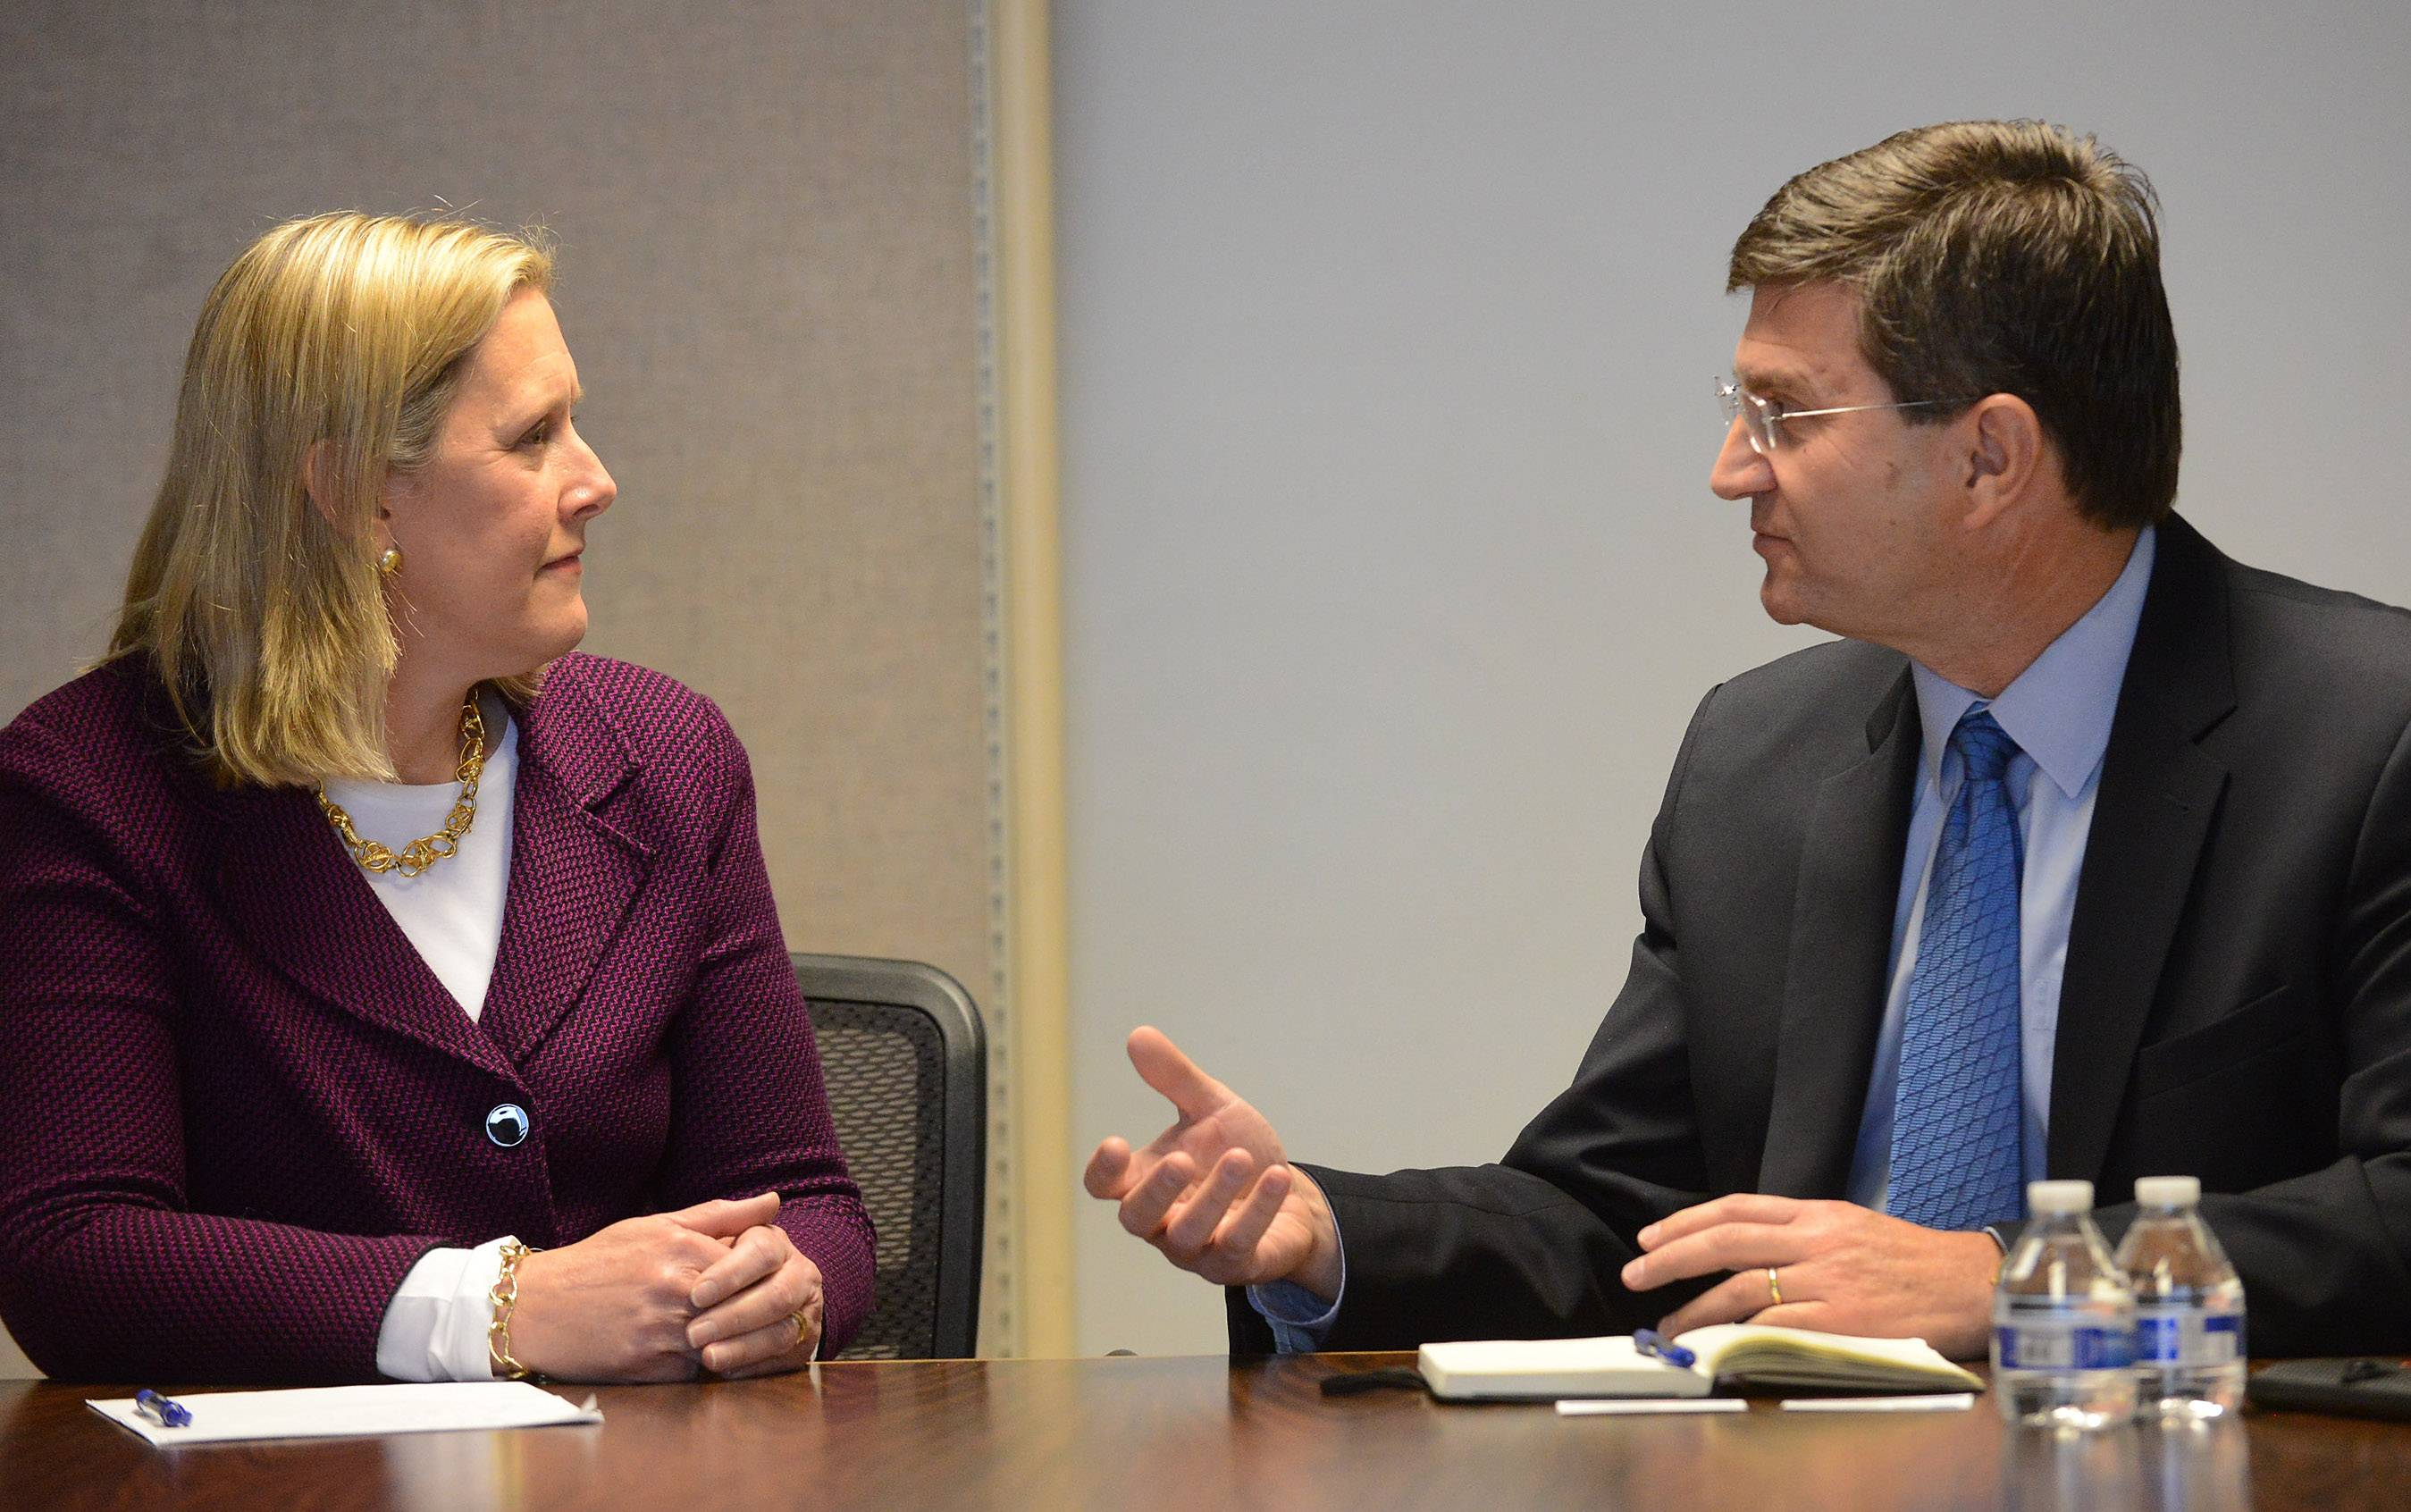 Highland Park Mayor Nancy Rotering and former congressman Brad Schneider discussed the Affordable Care Act and other issues during an interview with the Daily Herald editorial board.